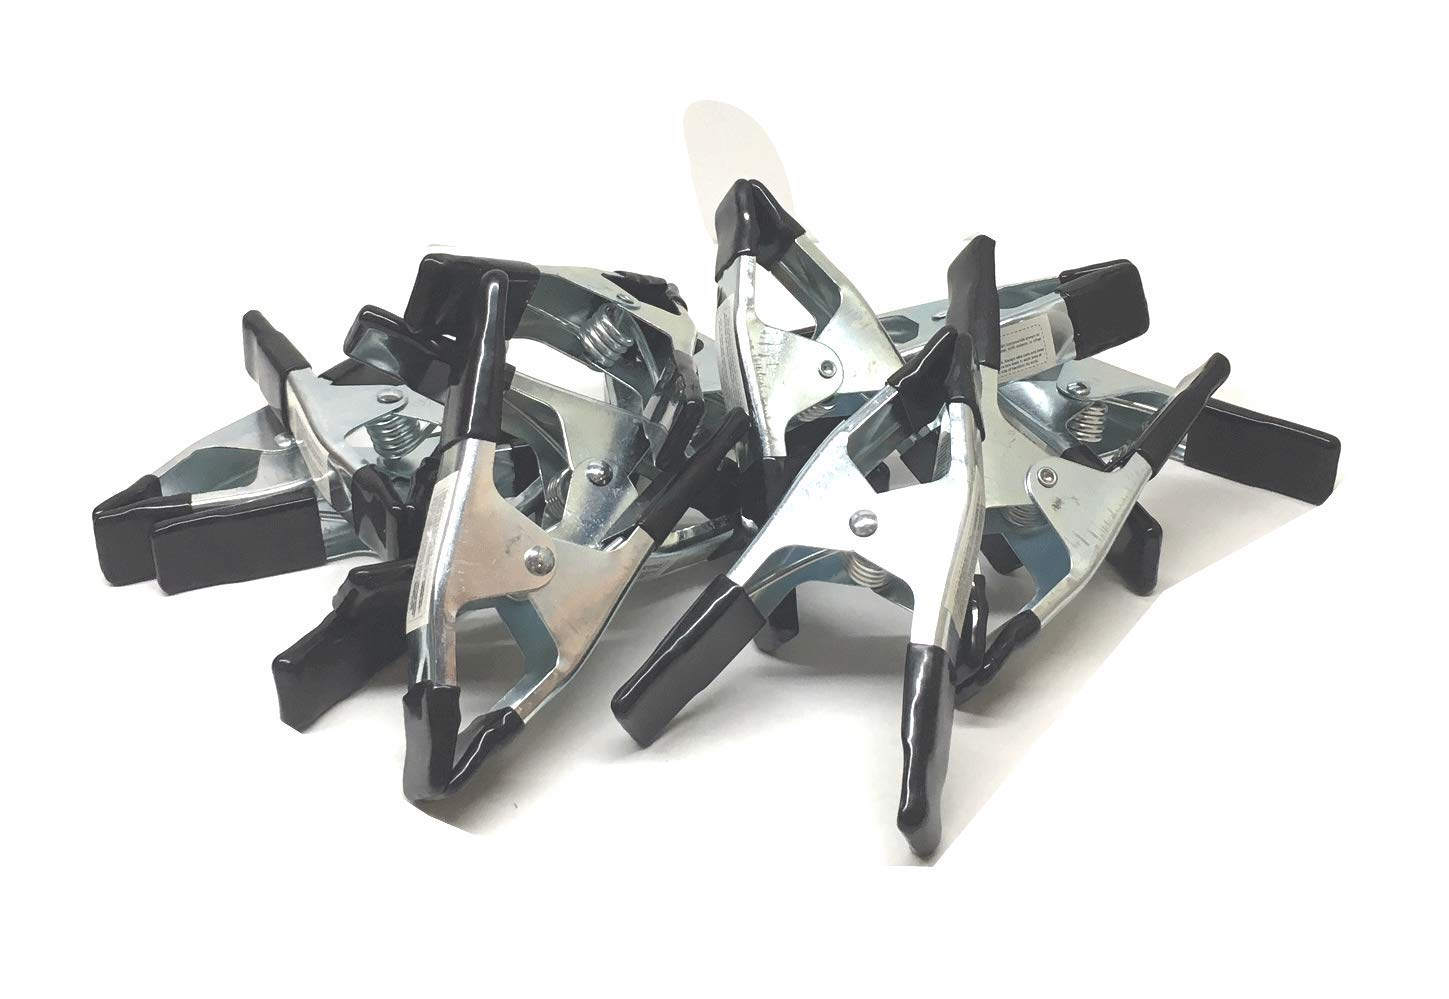 6'' Inches Clamp Heavy Duty Metal Spring Clamps - Black PVC Coated (Black 12pc)